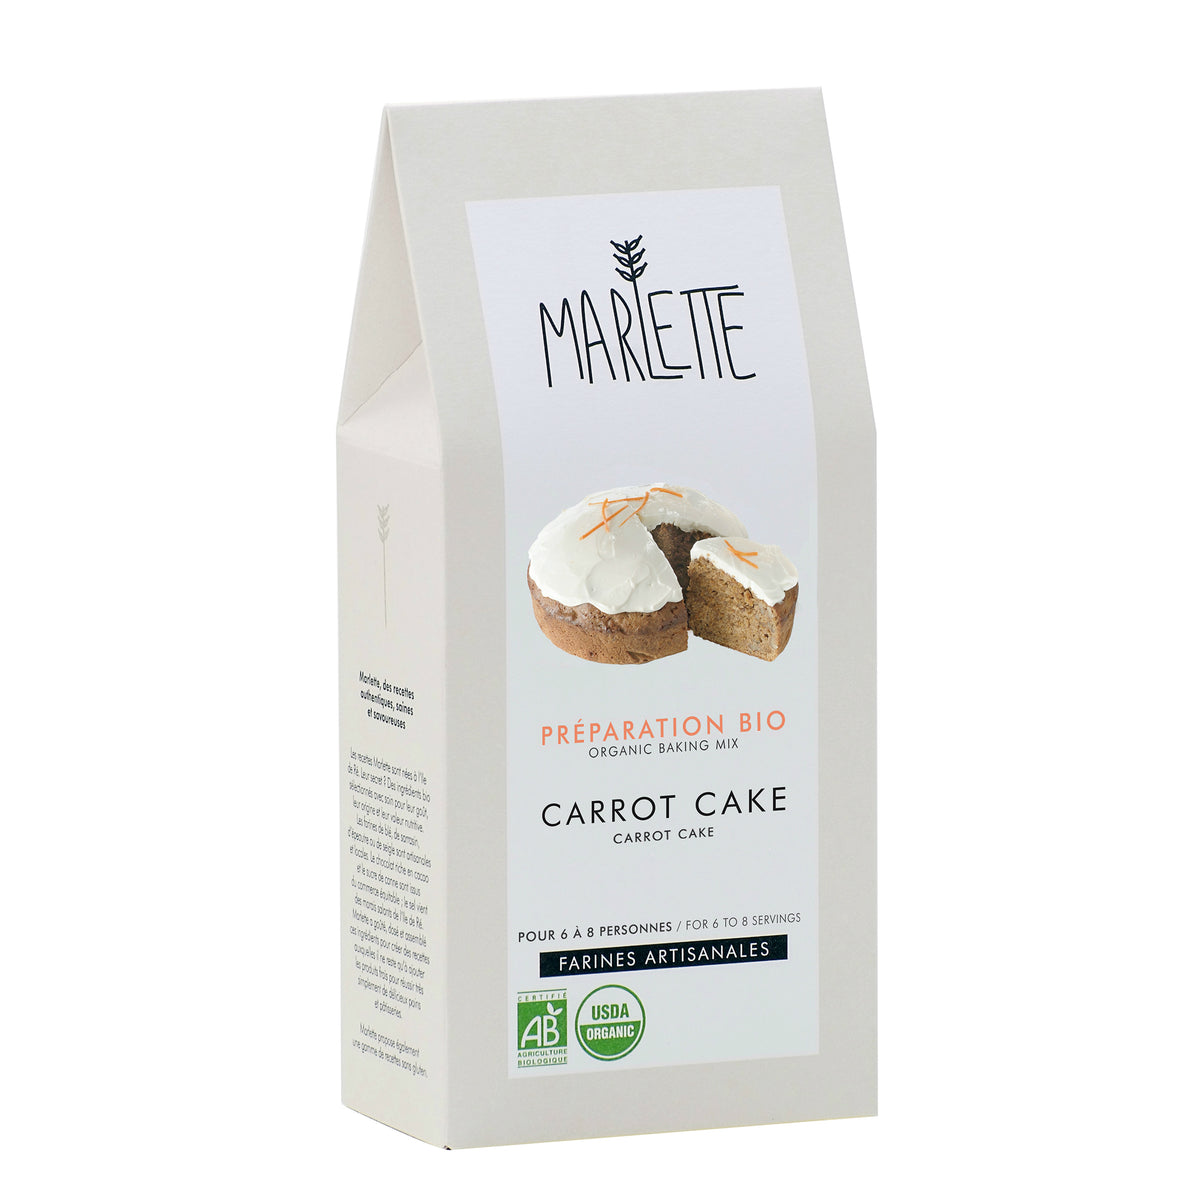 Carrot cake - organic baking mix